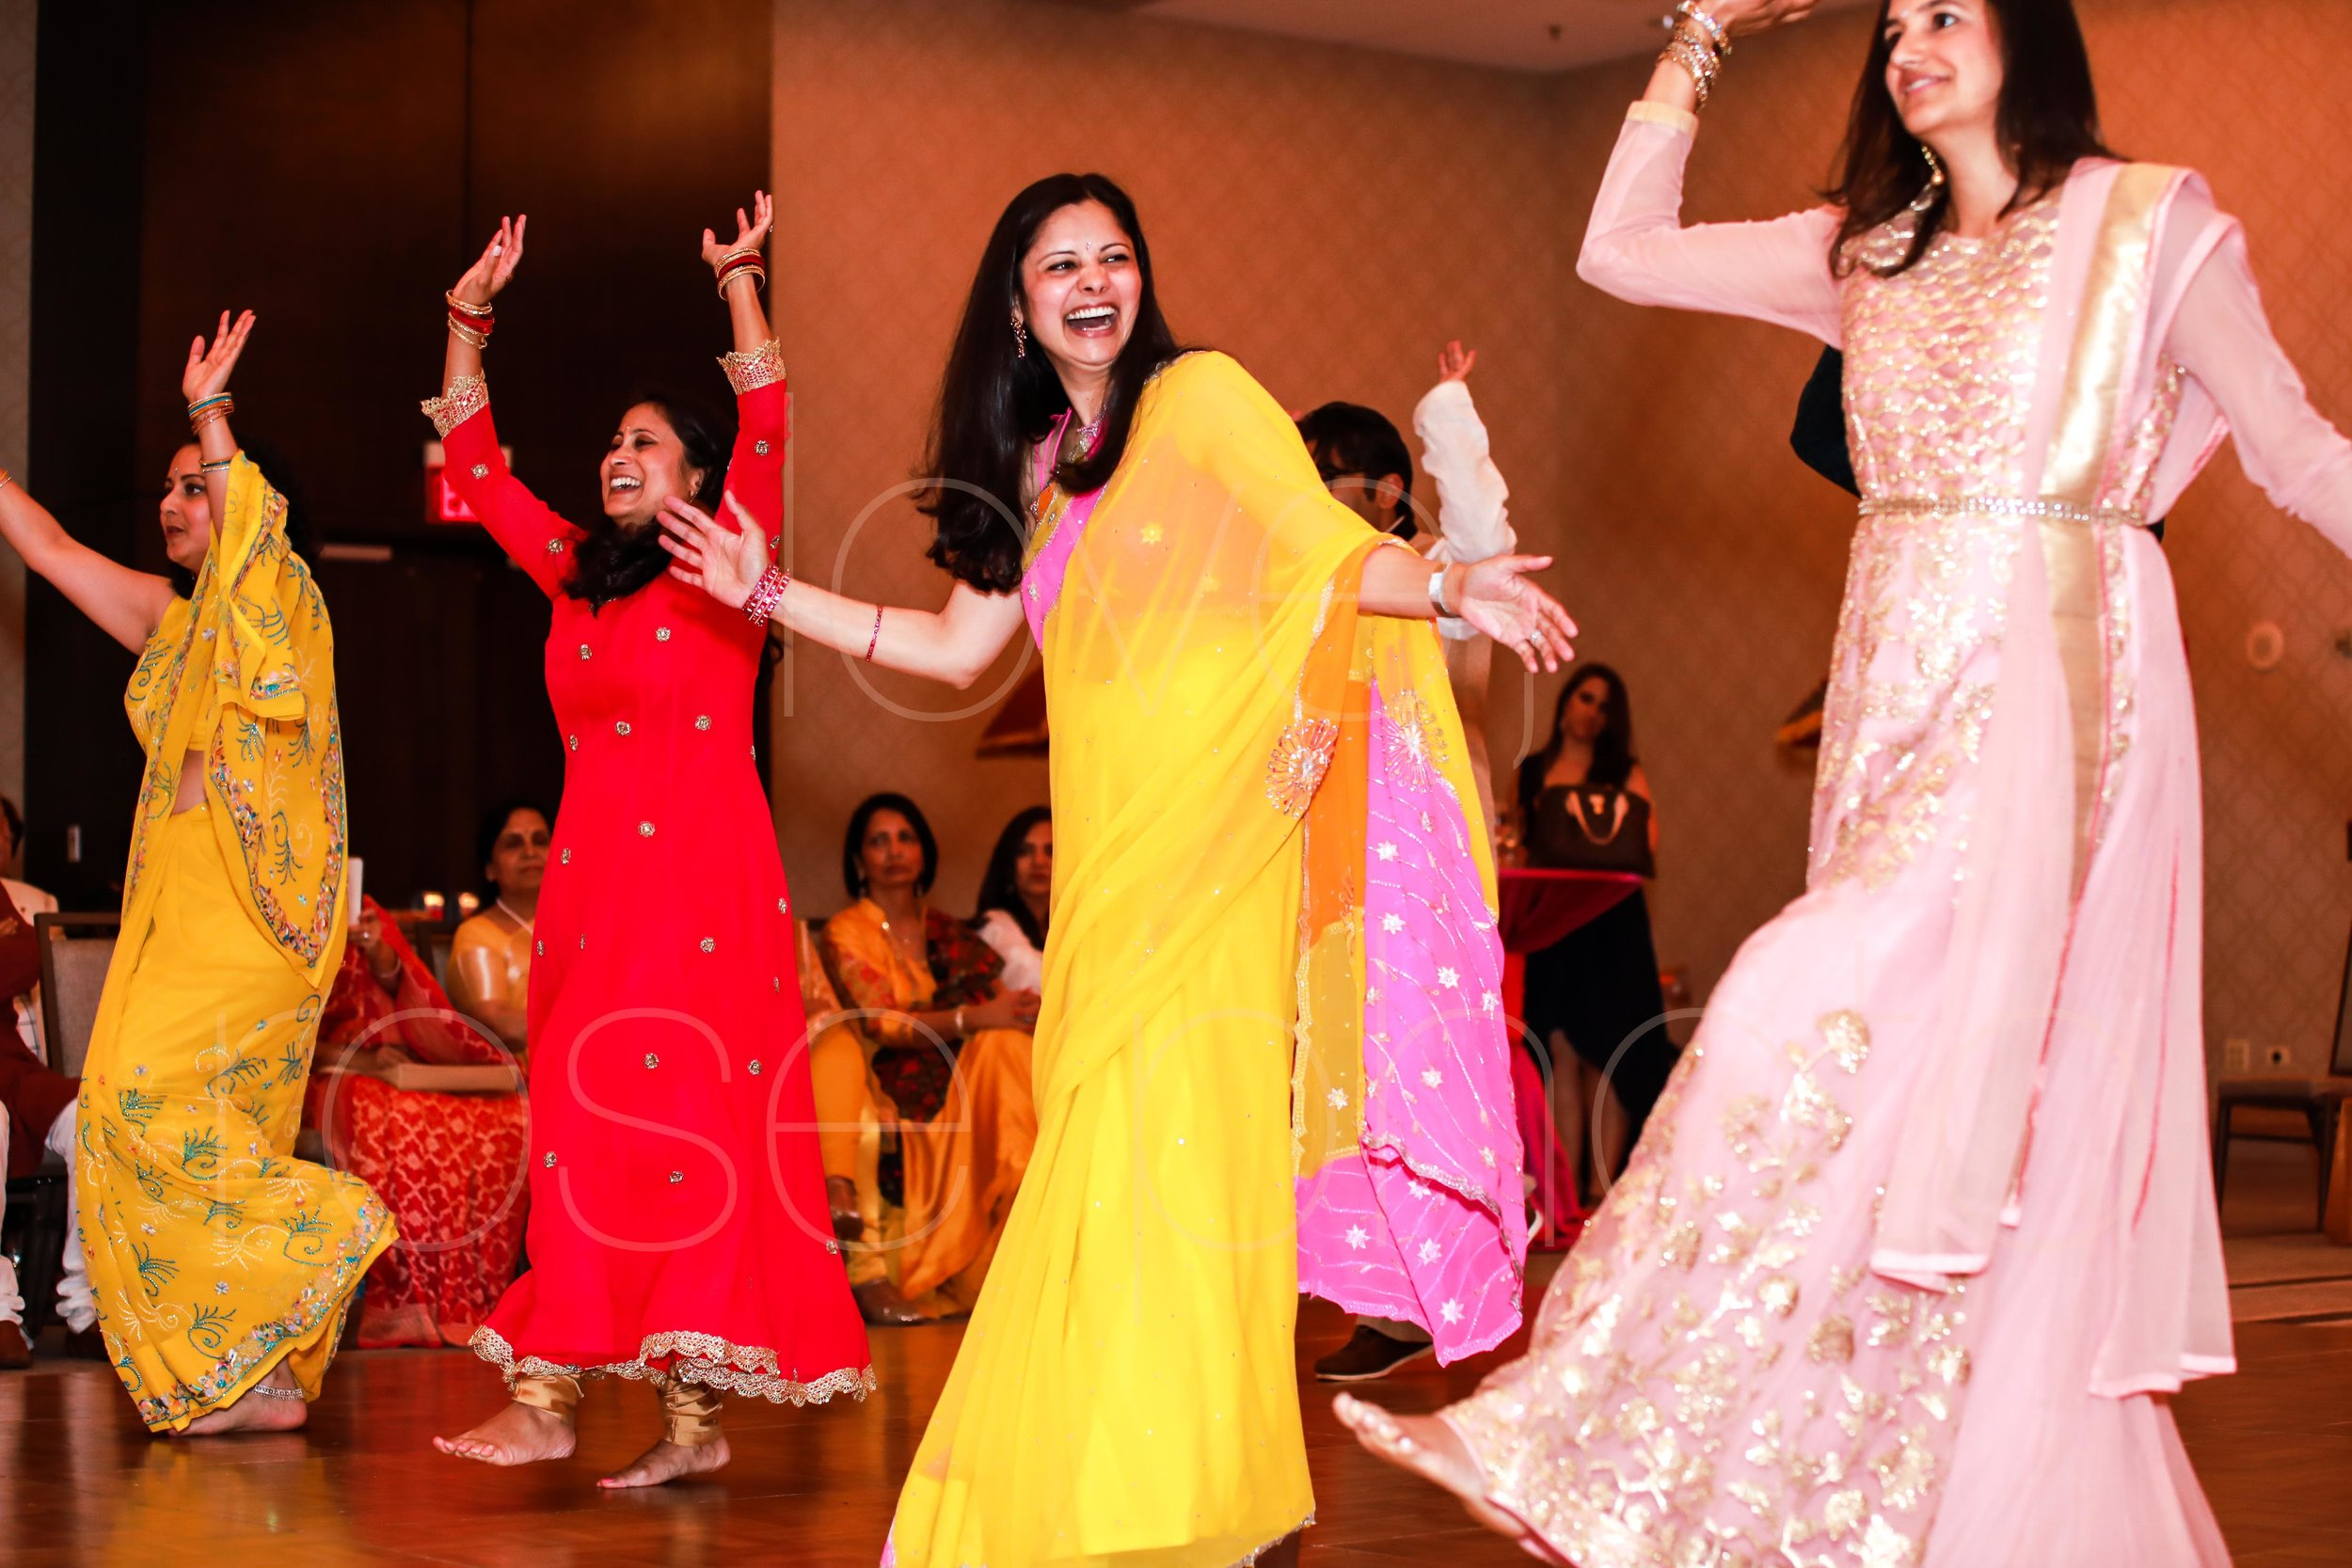 best chicago indian wedding photographer rose photo video collective-37.jpg